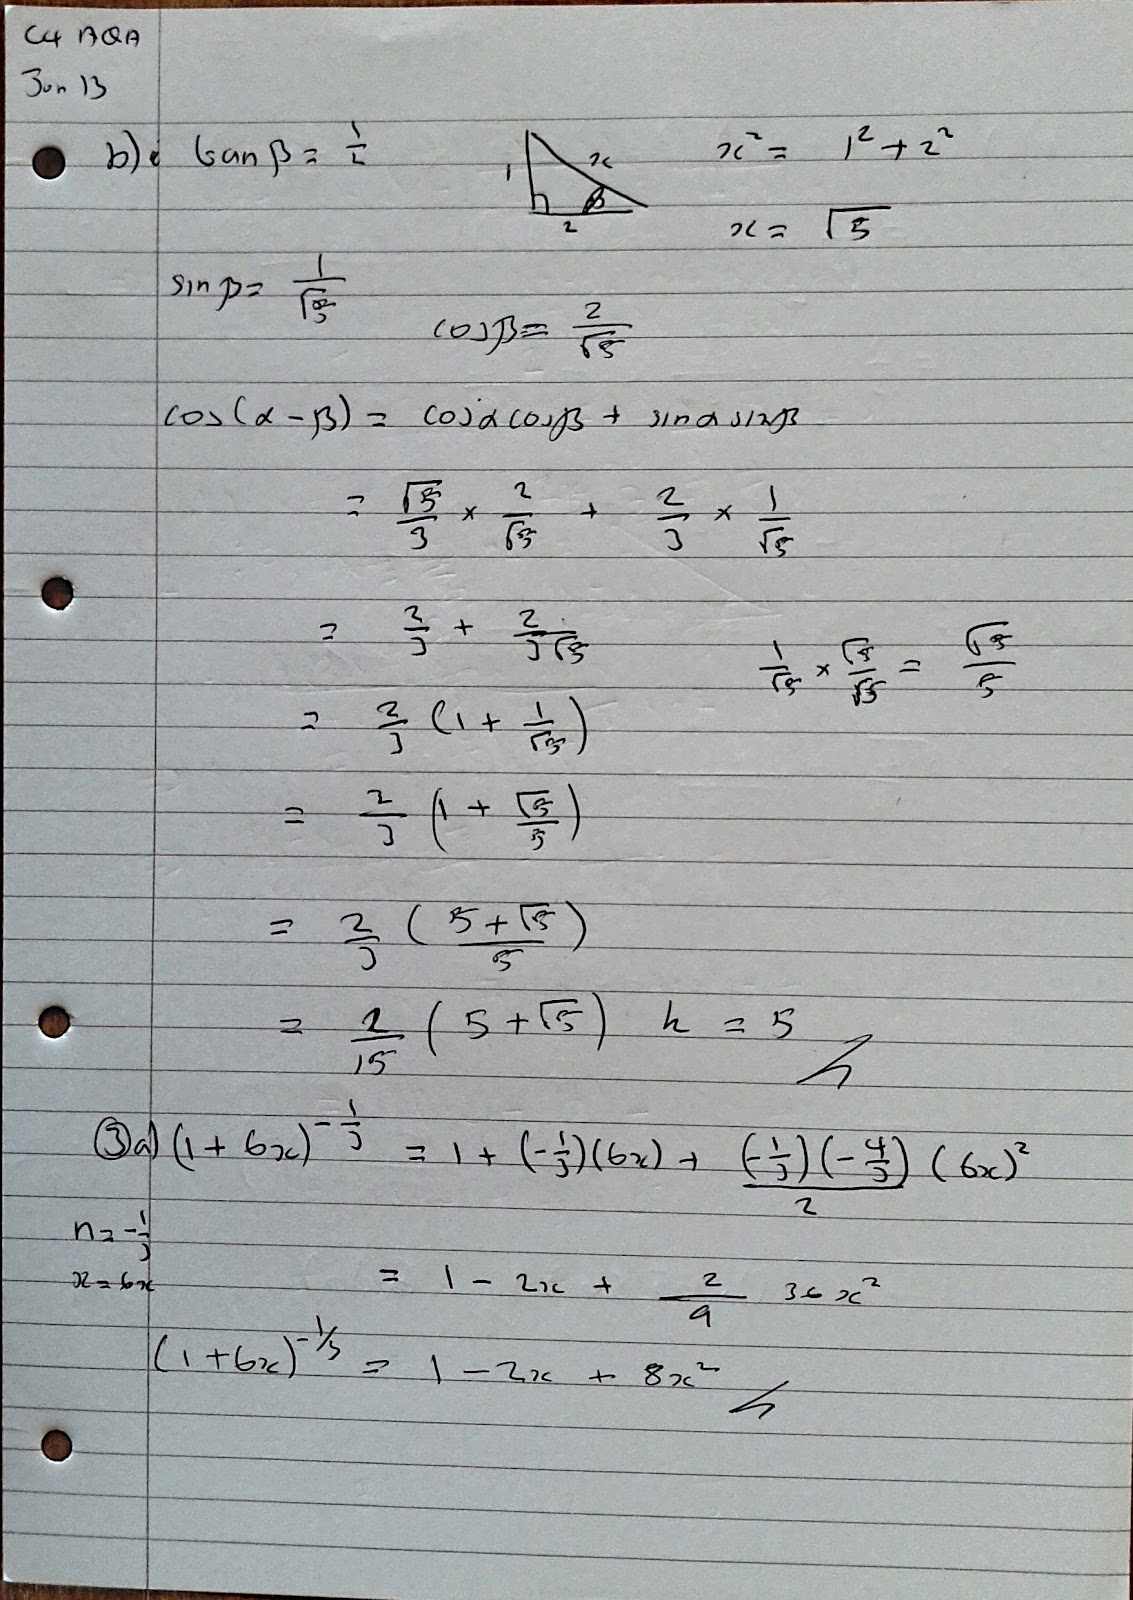 A Level Maths Notes: AQA Core 4 (C4) Summer 2013 Exam